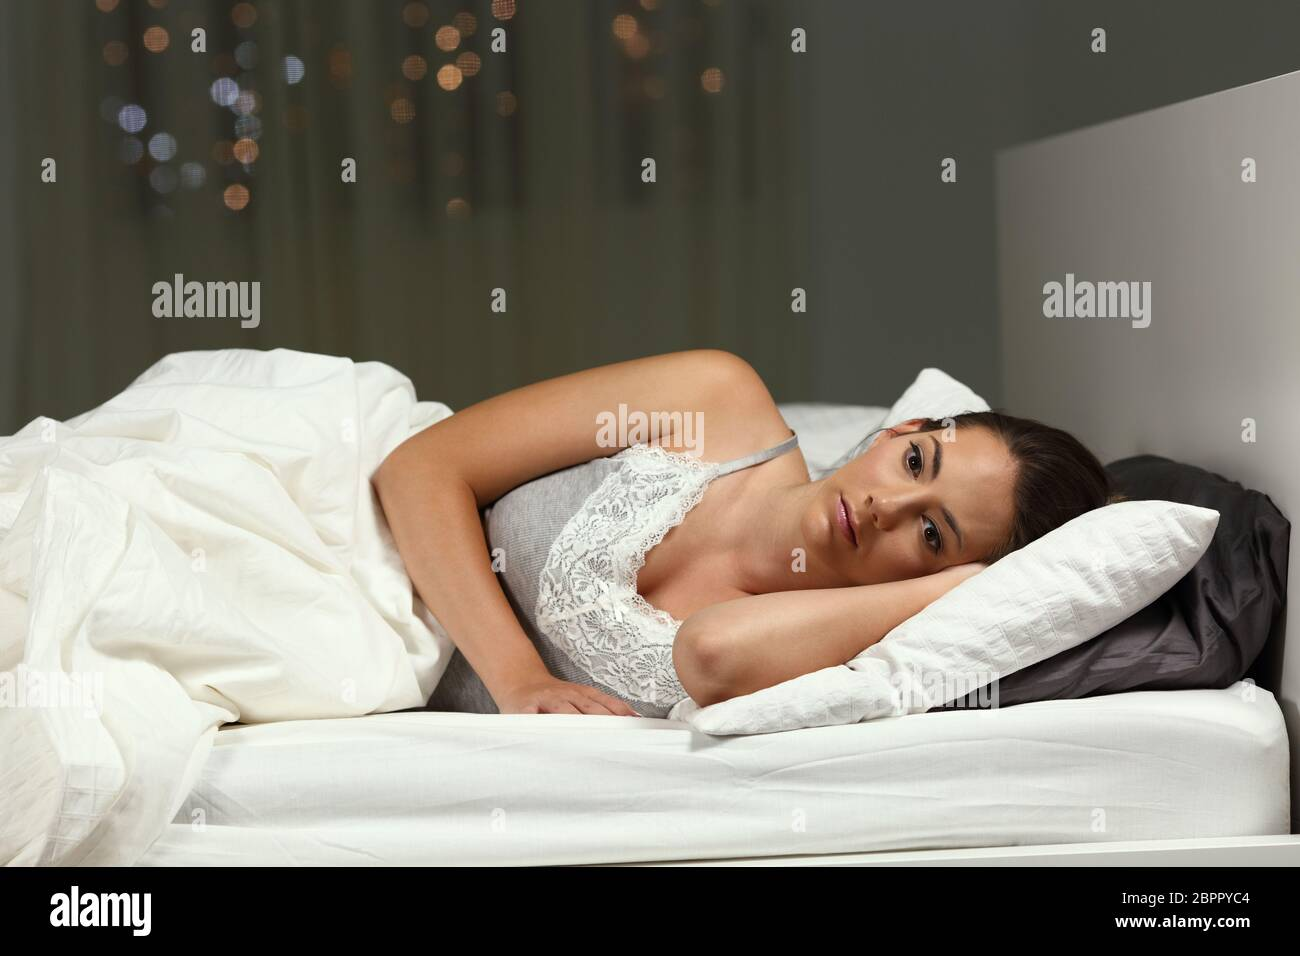 Insomniac woman can not sleep lying on the bed in the night at home Stock Photo